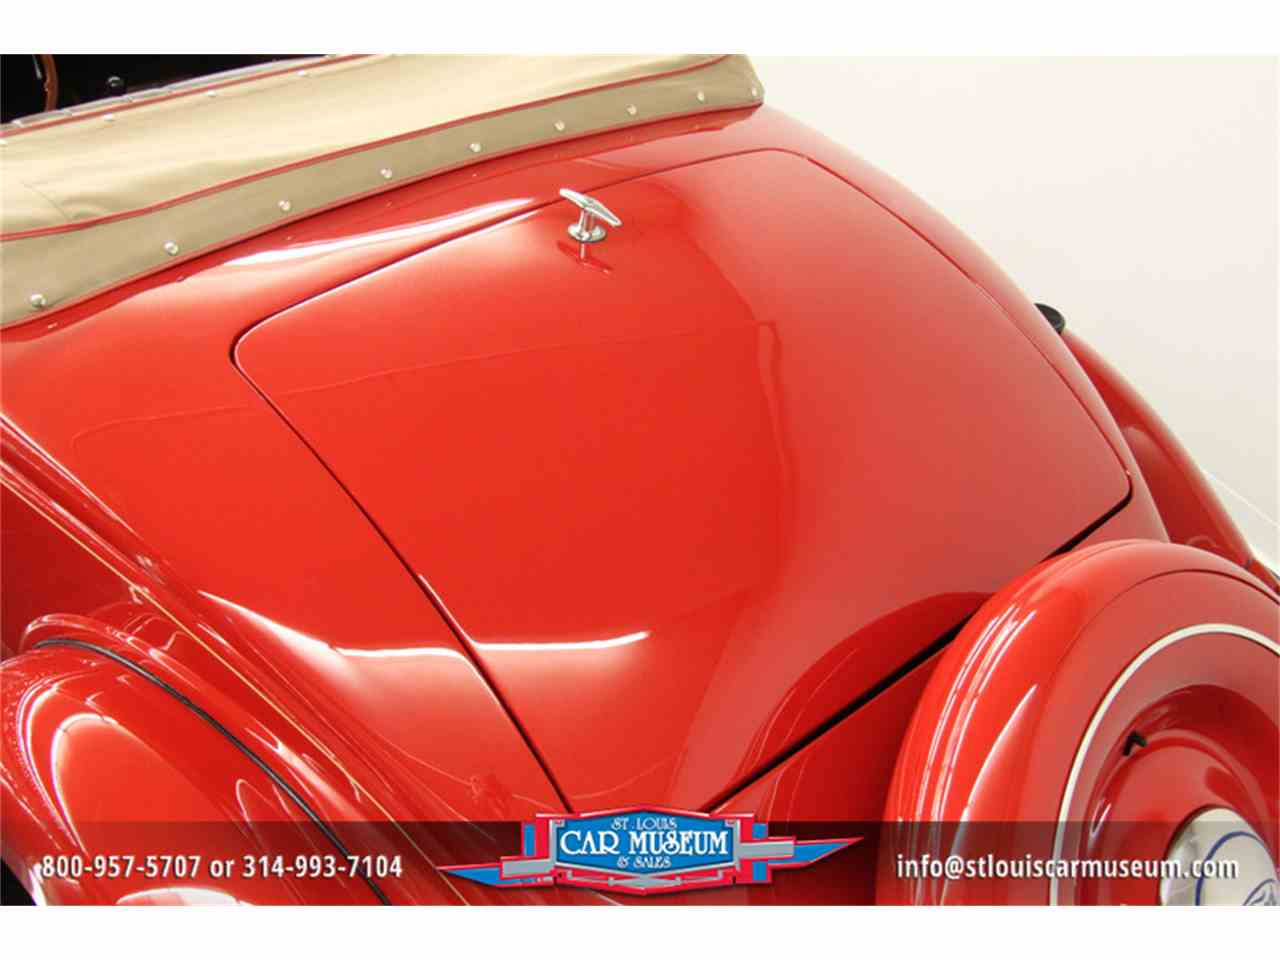 Large Picture of '36 Model 68 Deluxe Rumble-Seat Cabriolet - E6X9